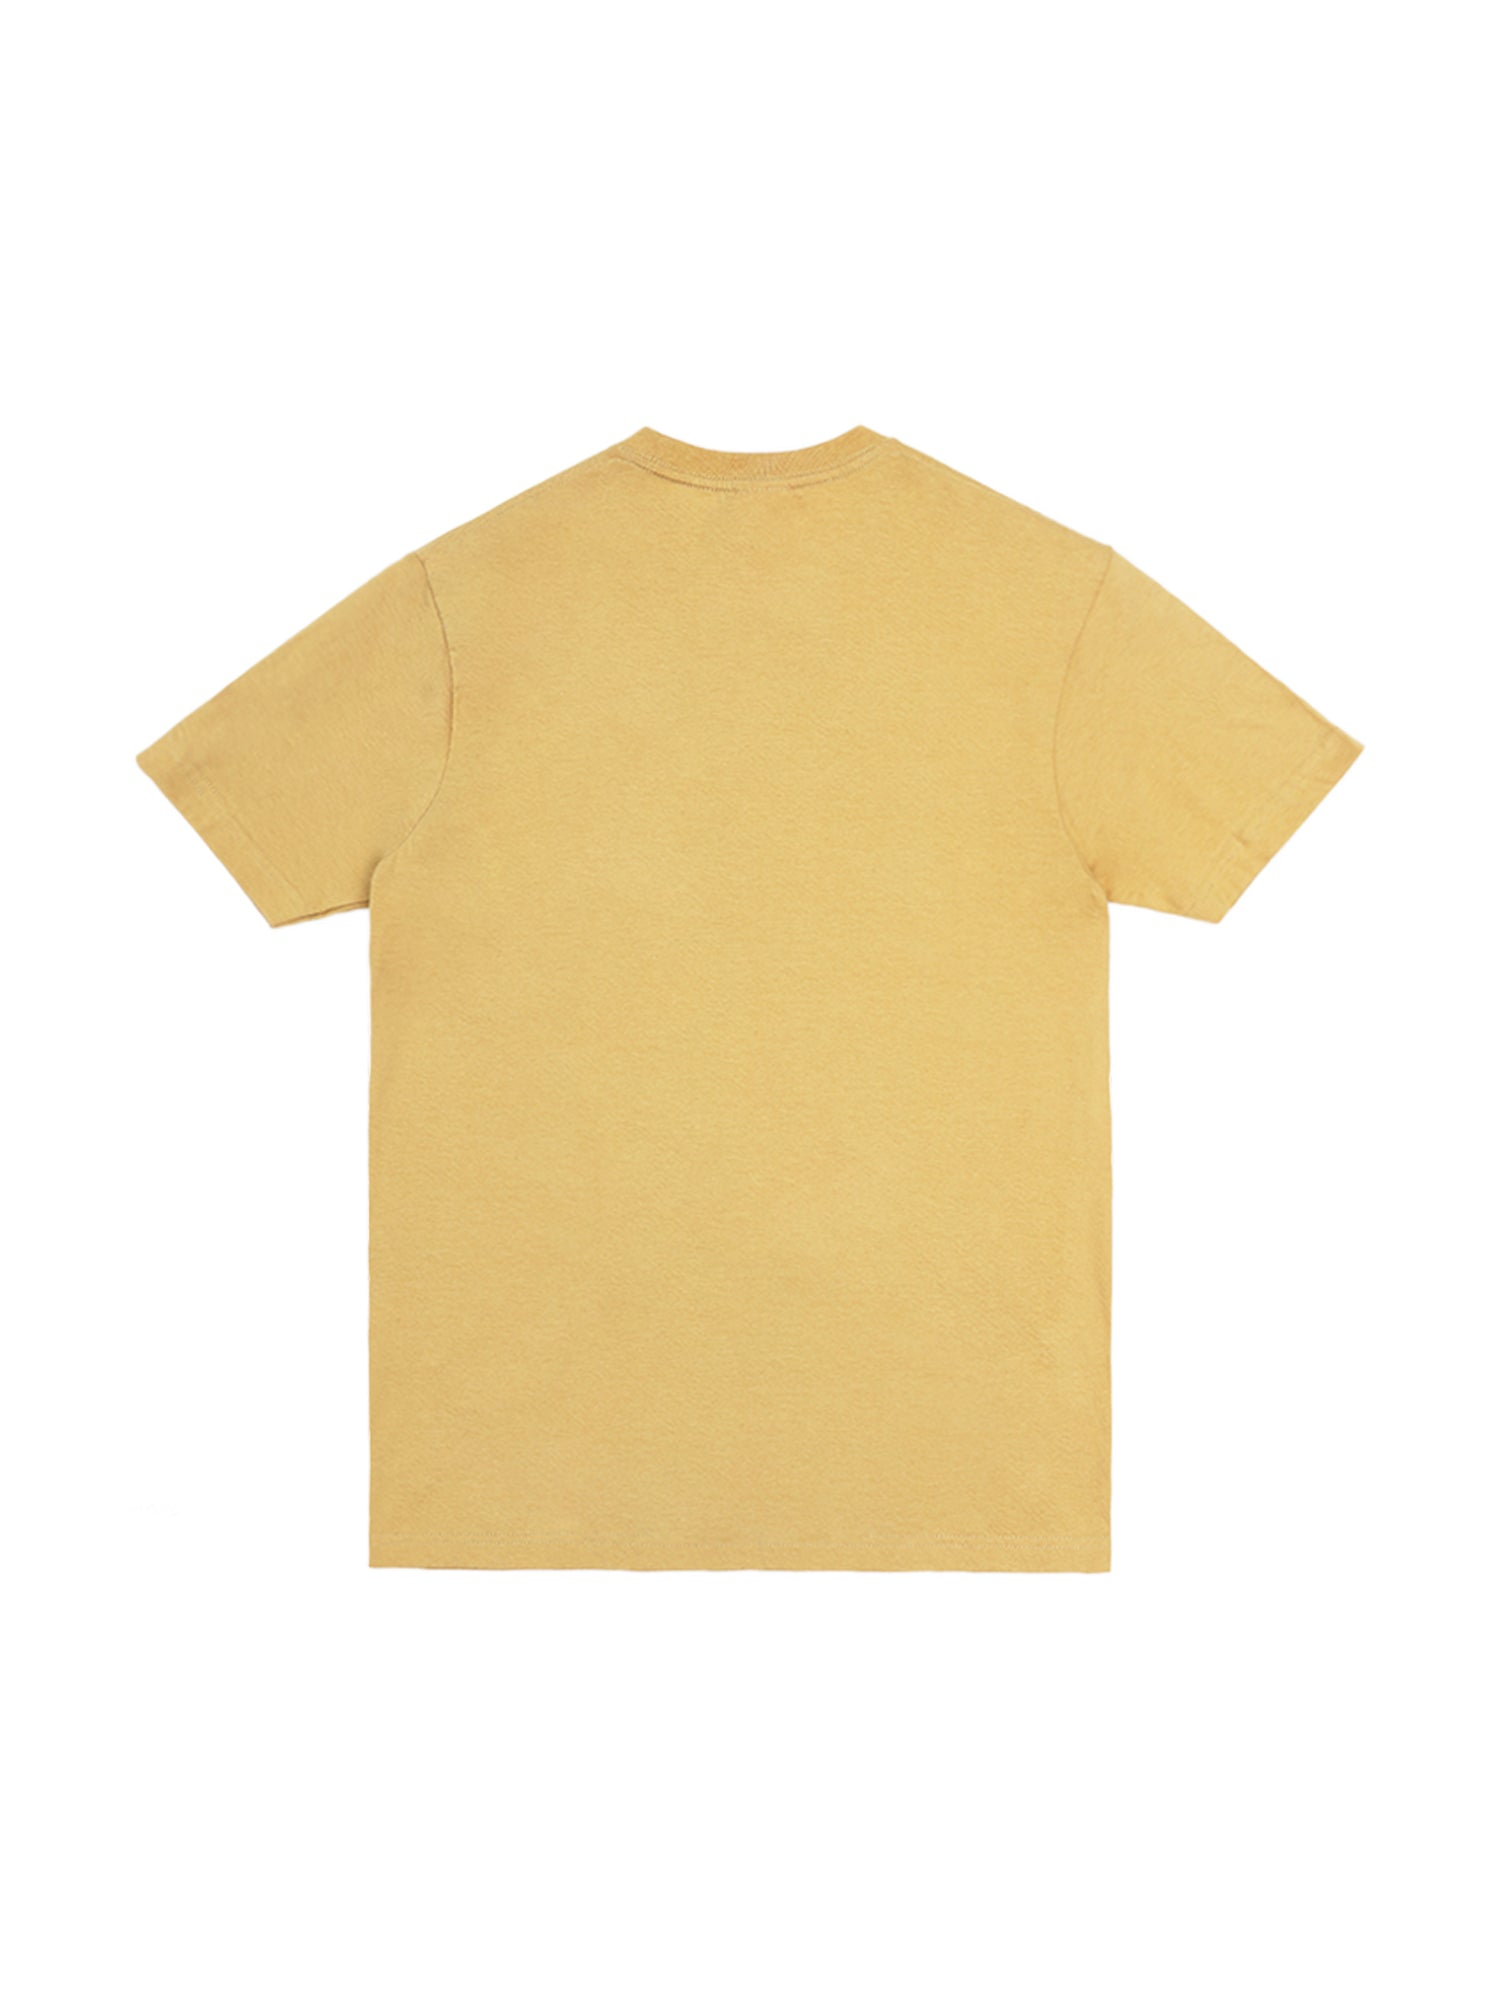 Carton Box Scibbles Crew Neck T-Shirt